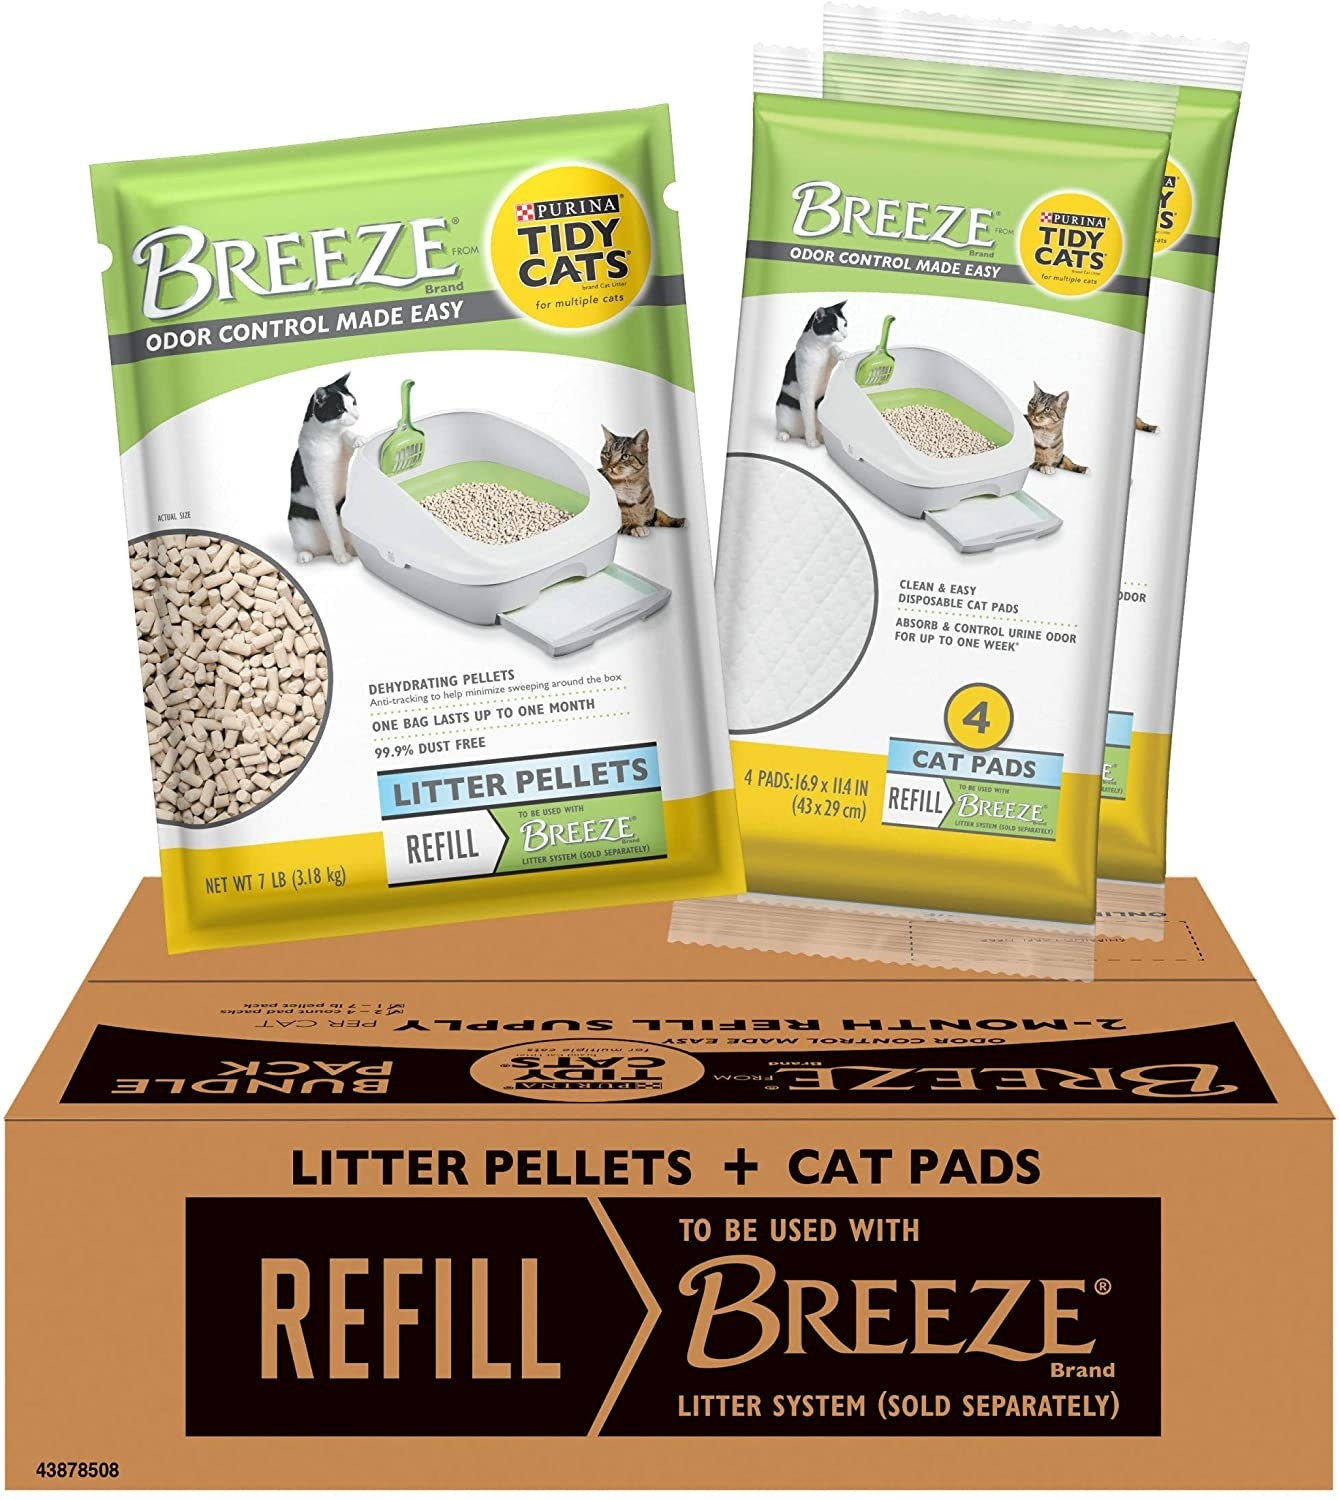 Refill for Breeze system with refills for litter pellets and cat pads